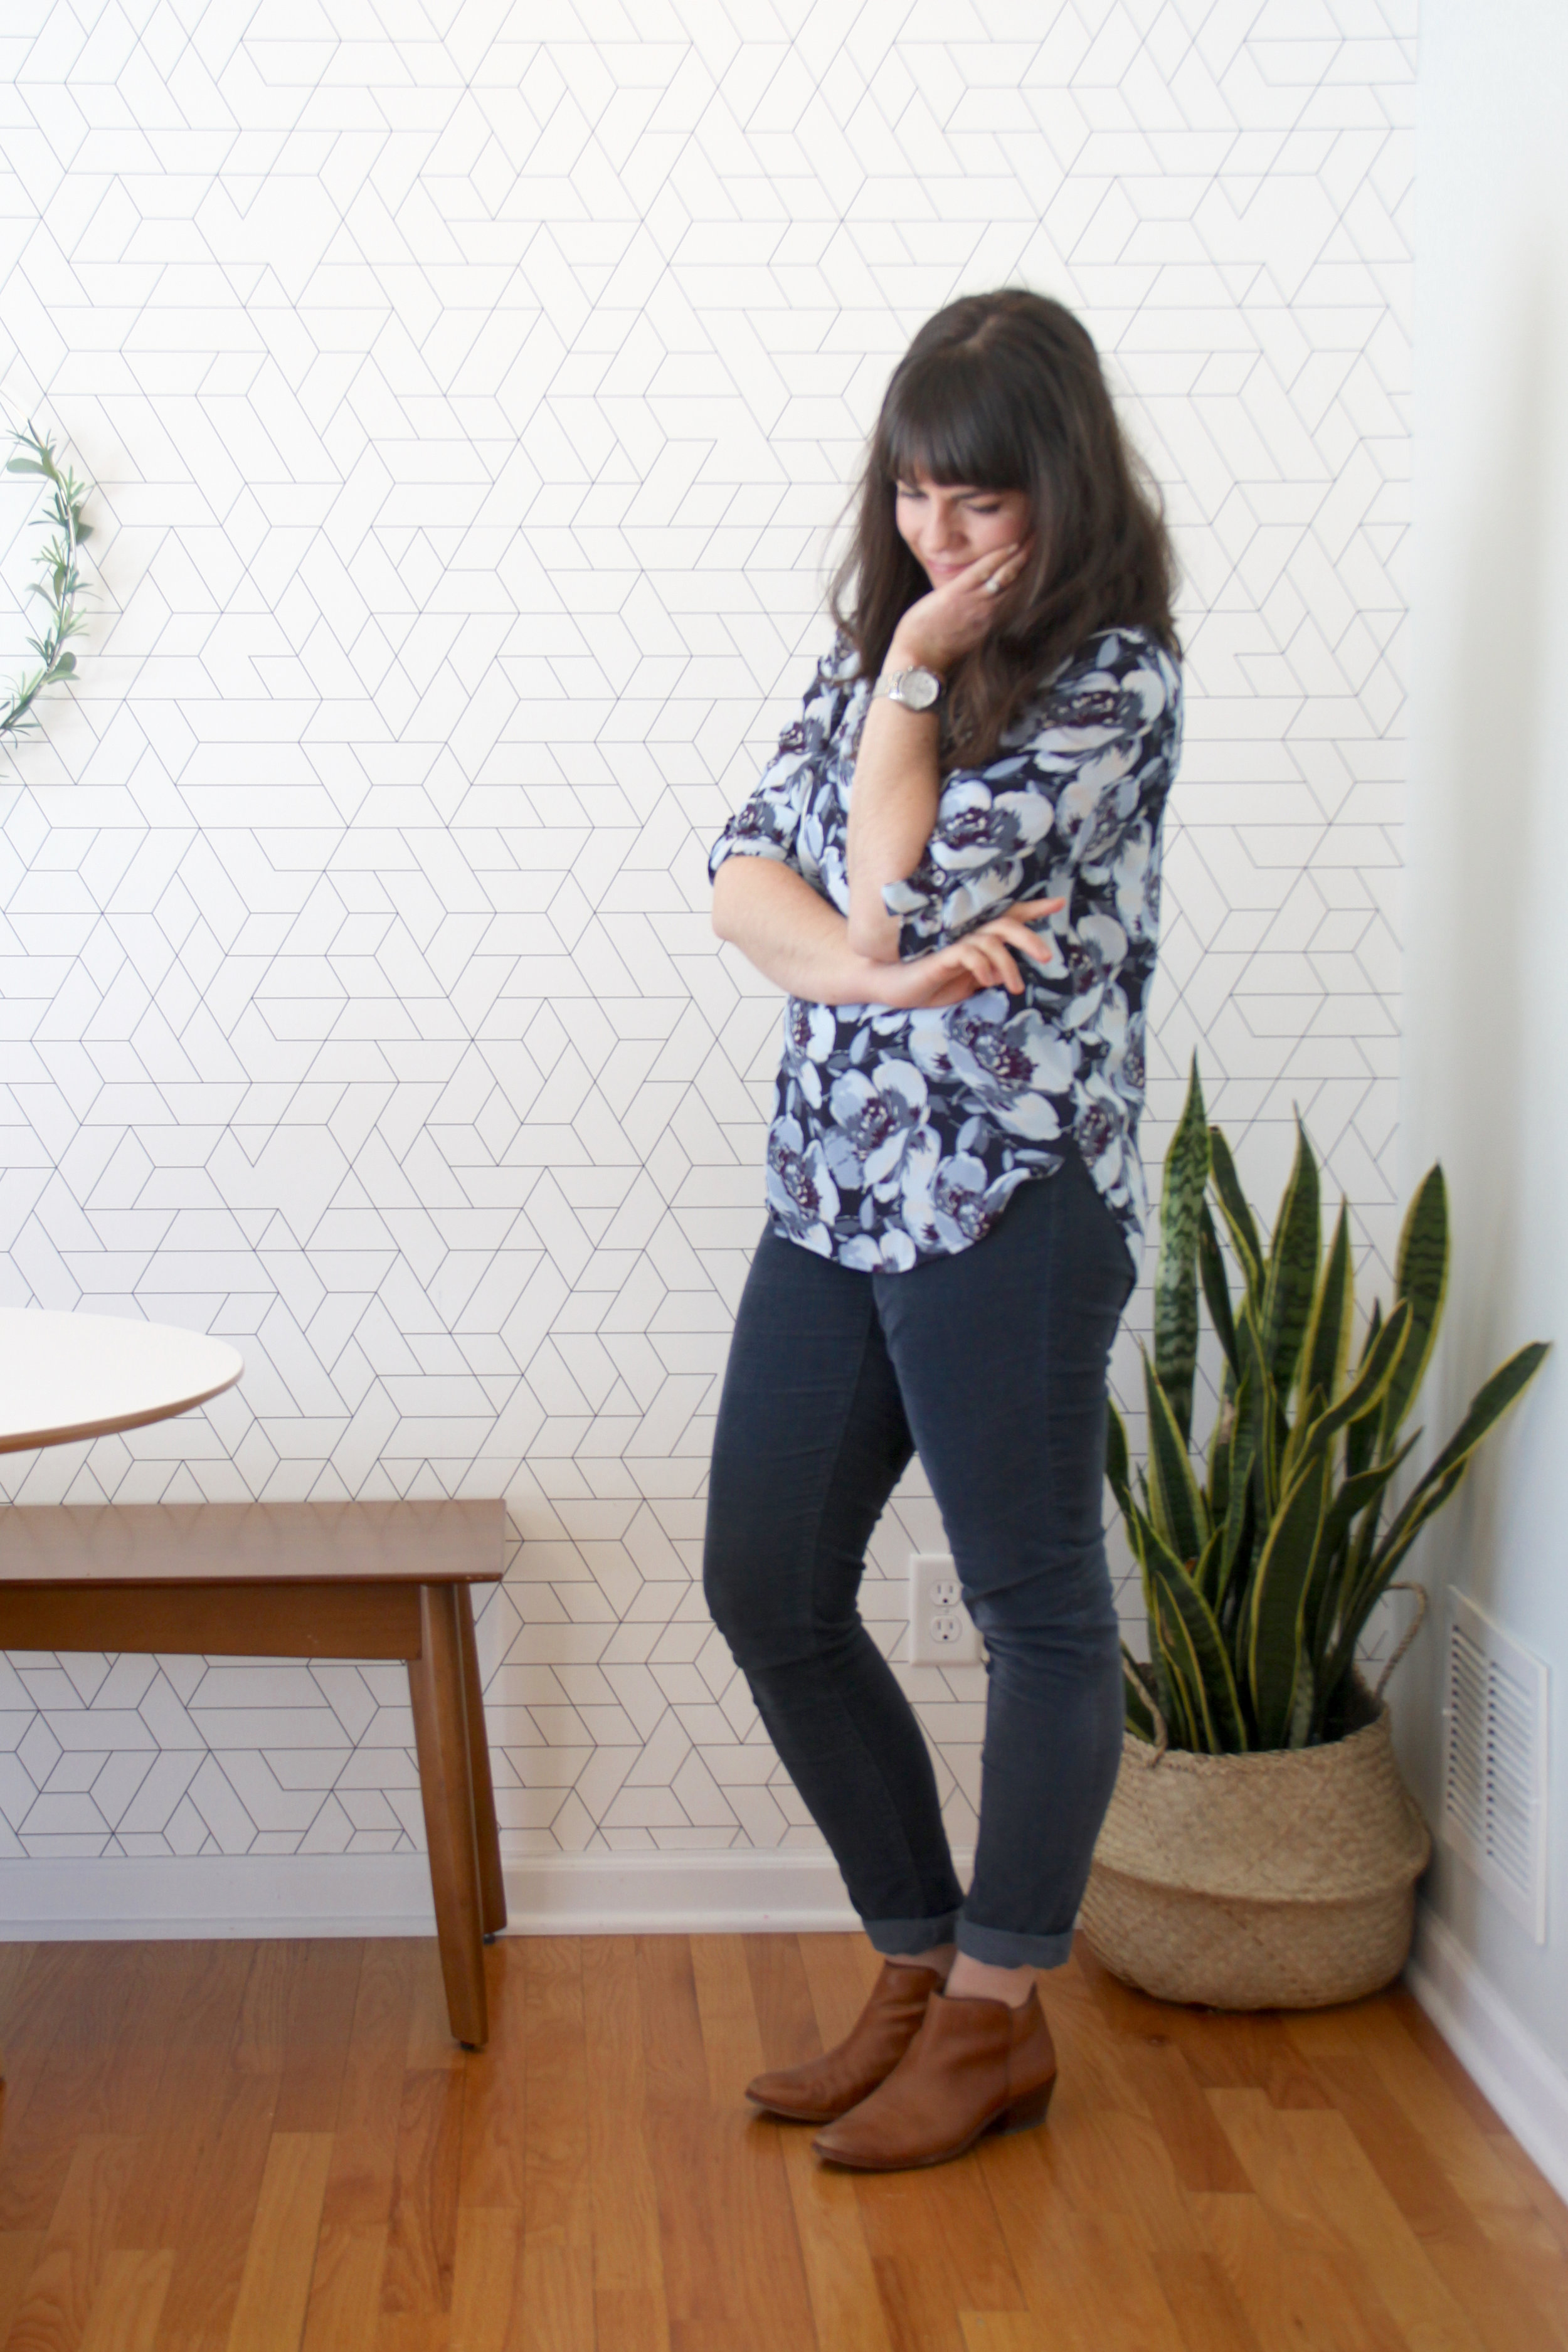 Spring 10 x 10 Challenge Floral Blouse with Cords